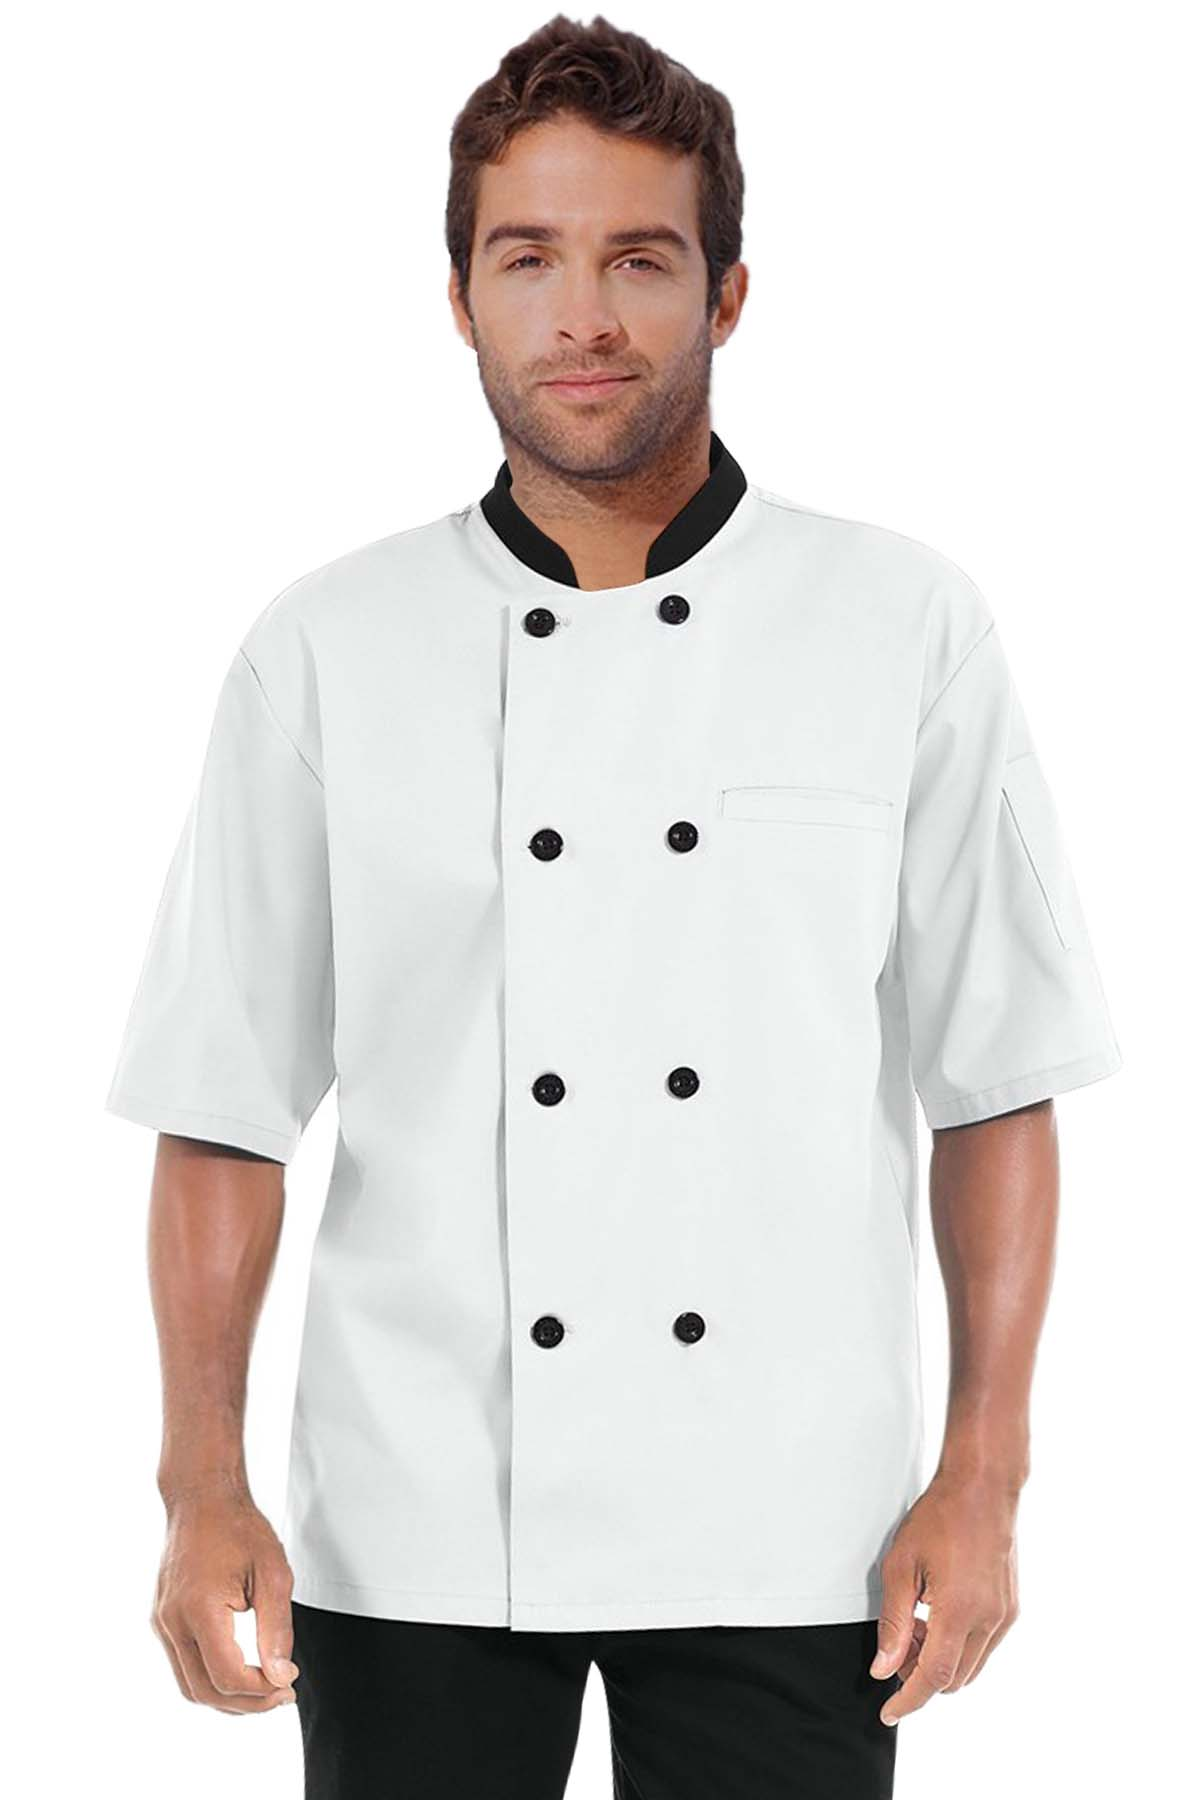 Twill Men's Short Sleeve Chef Coat With 1 Chest pocket and 1 Sleeve Pocket - Button Front Closure - Contrasting collar and buttons (48 perc cotton 52 perc polyester)